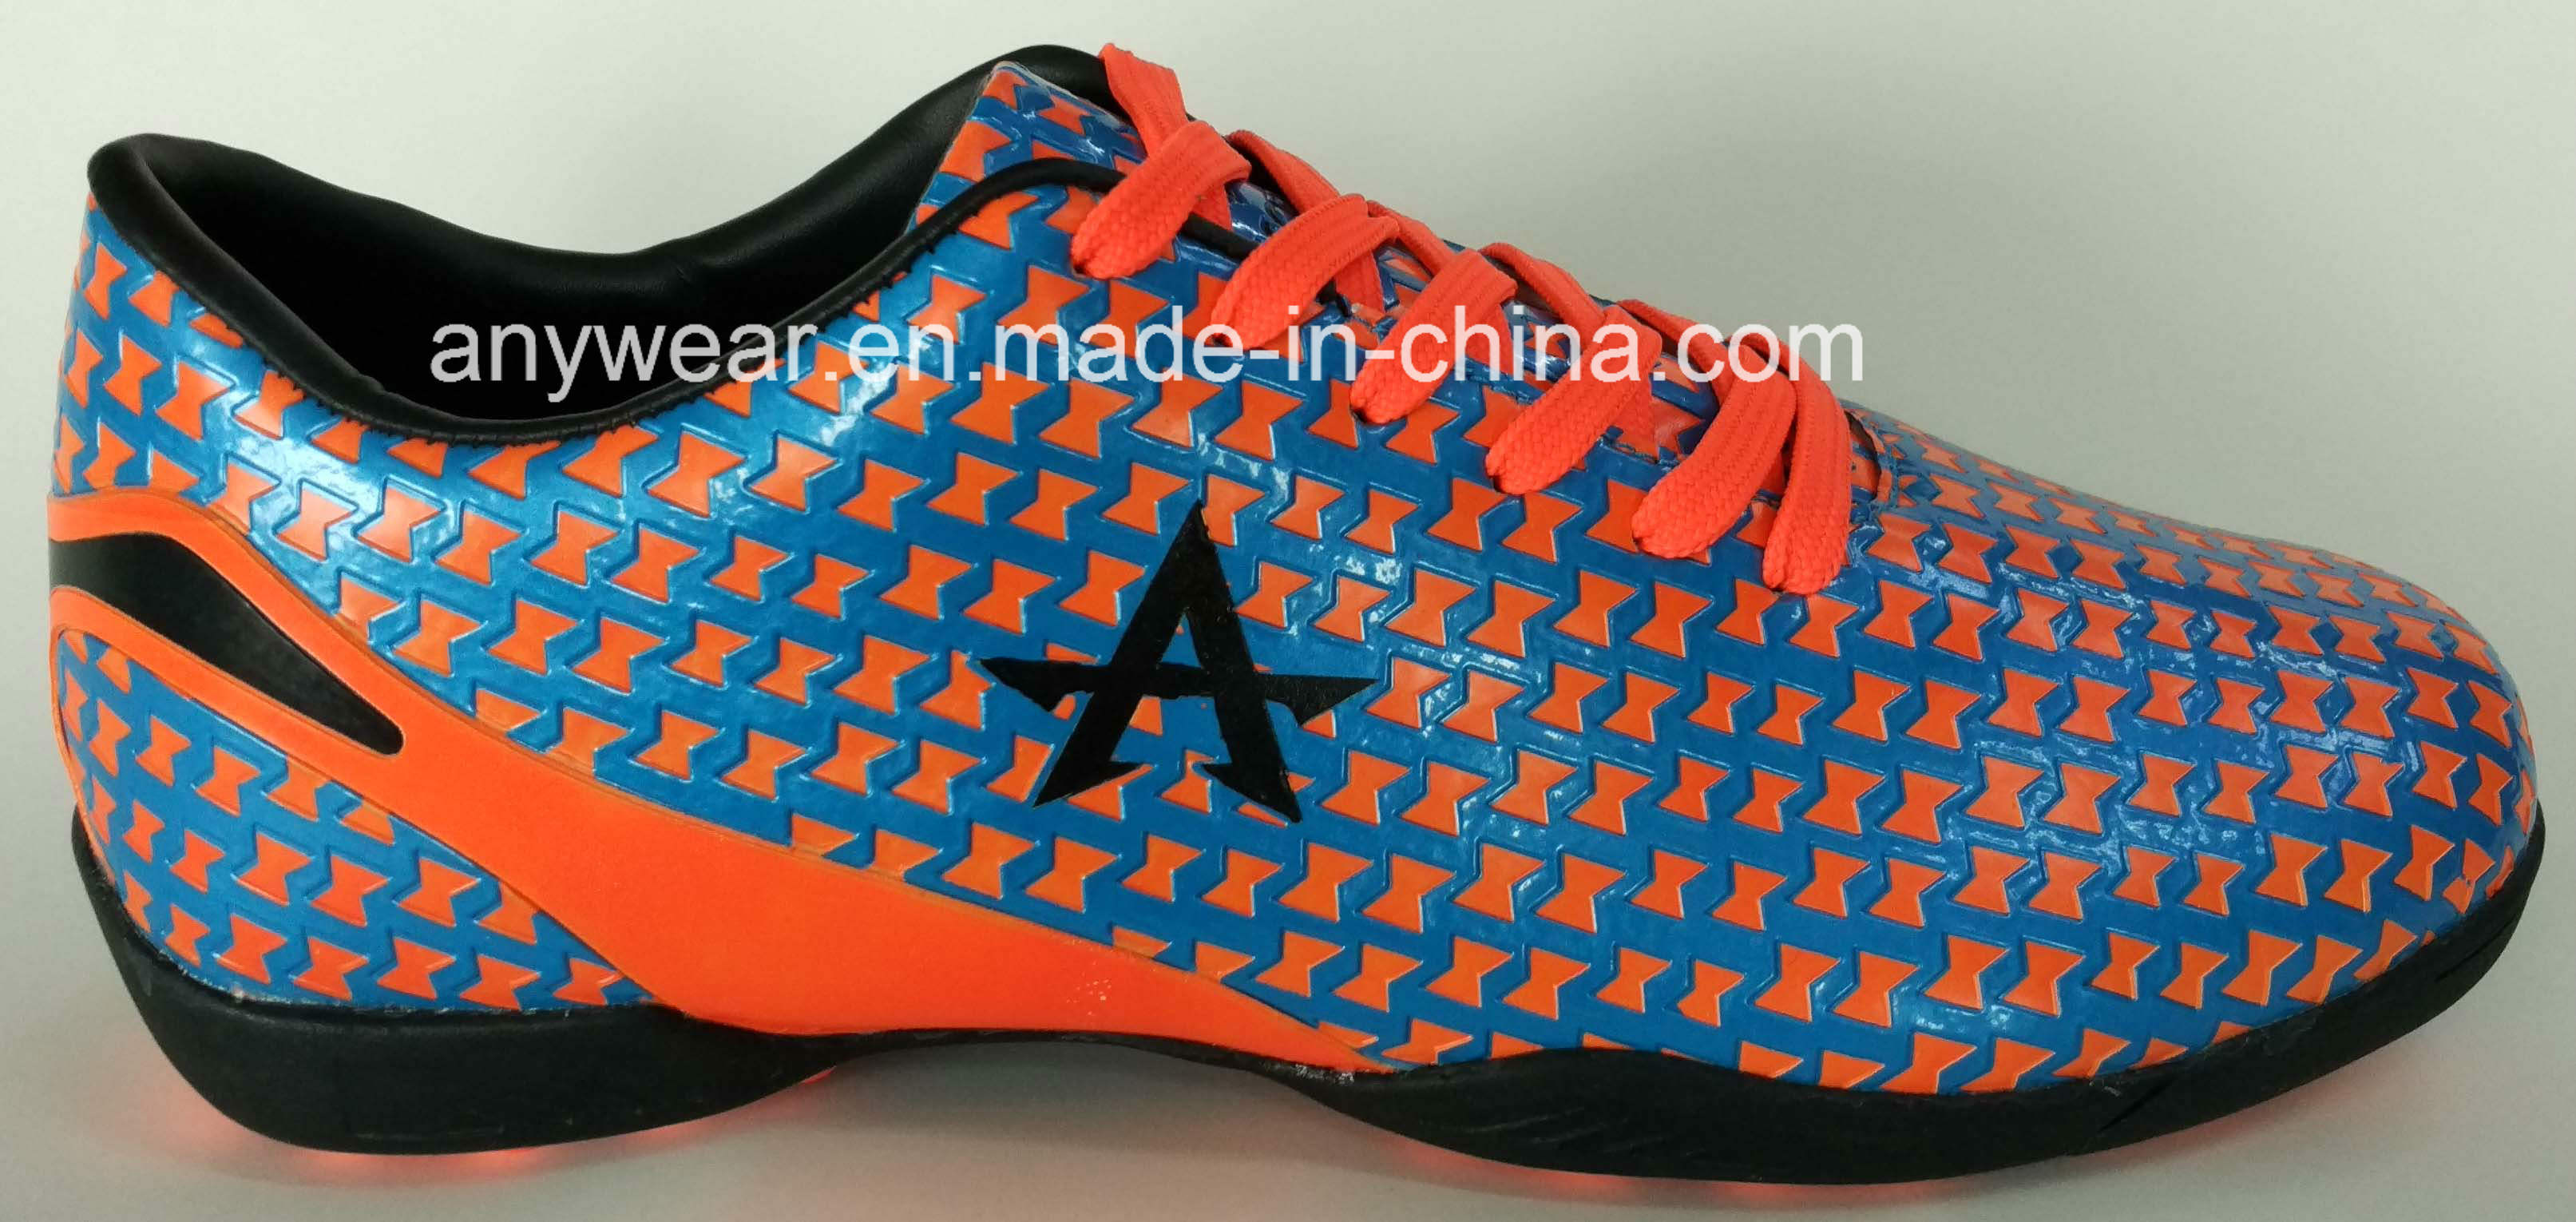 13d8595a6 China Football Soccer Footwear Outdoor Rubber Futsal Outsole Turf Shoes  (817-173T) - China Shoes